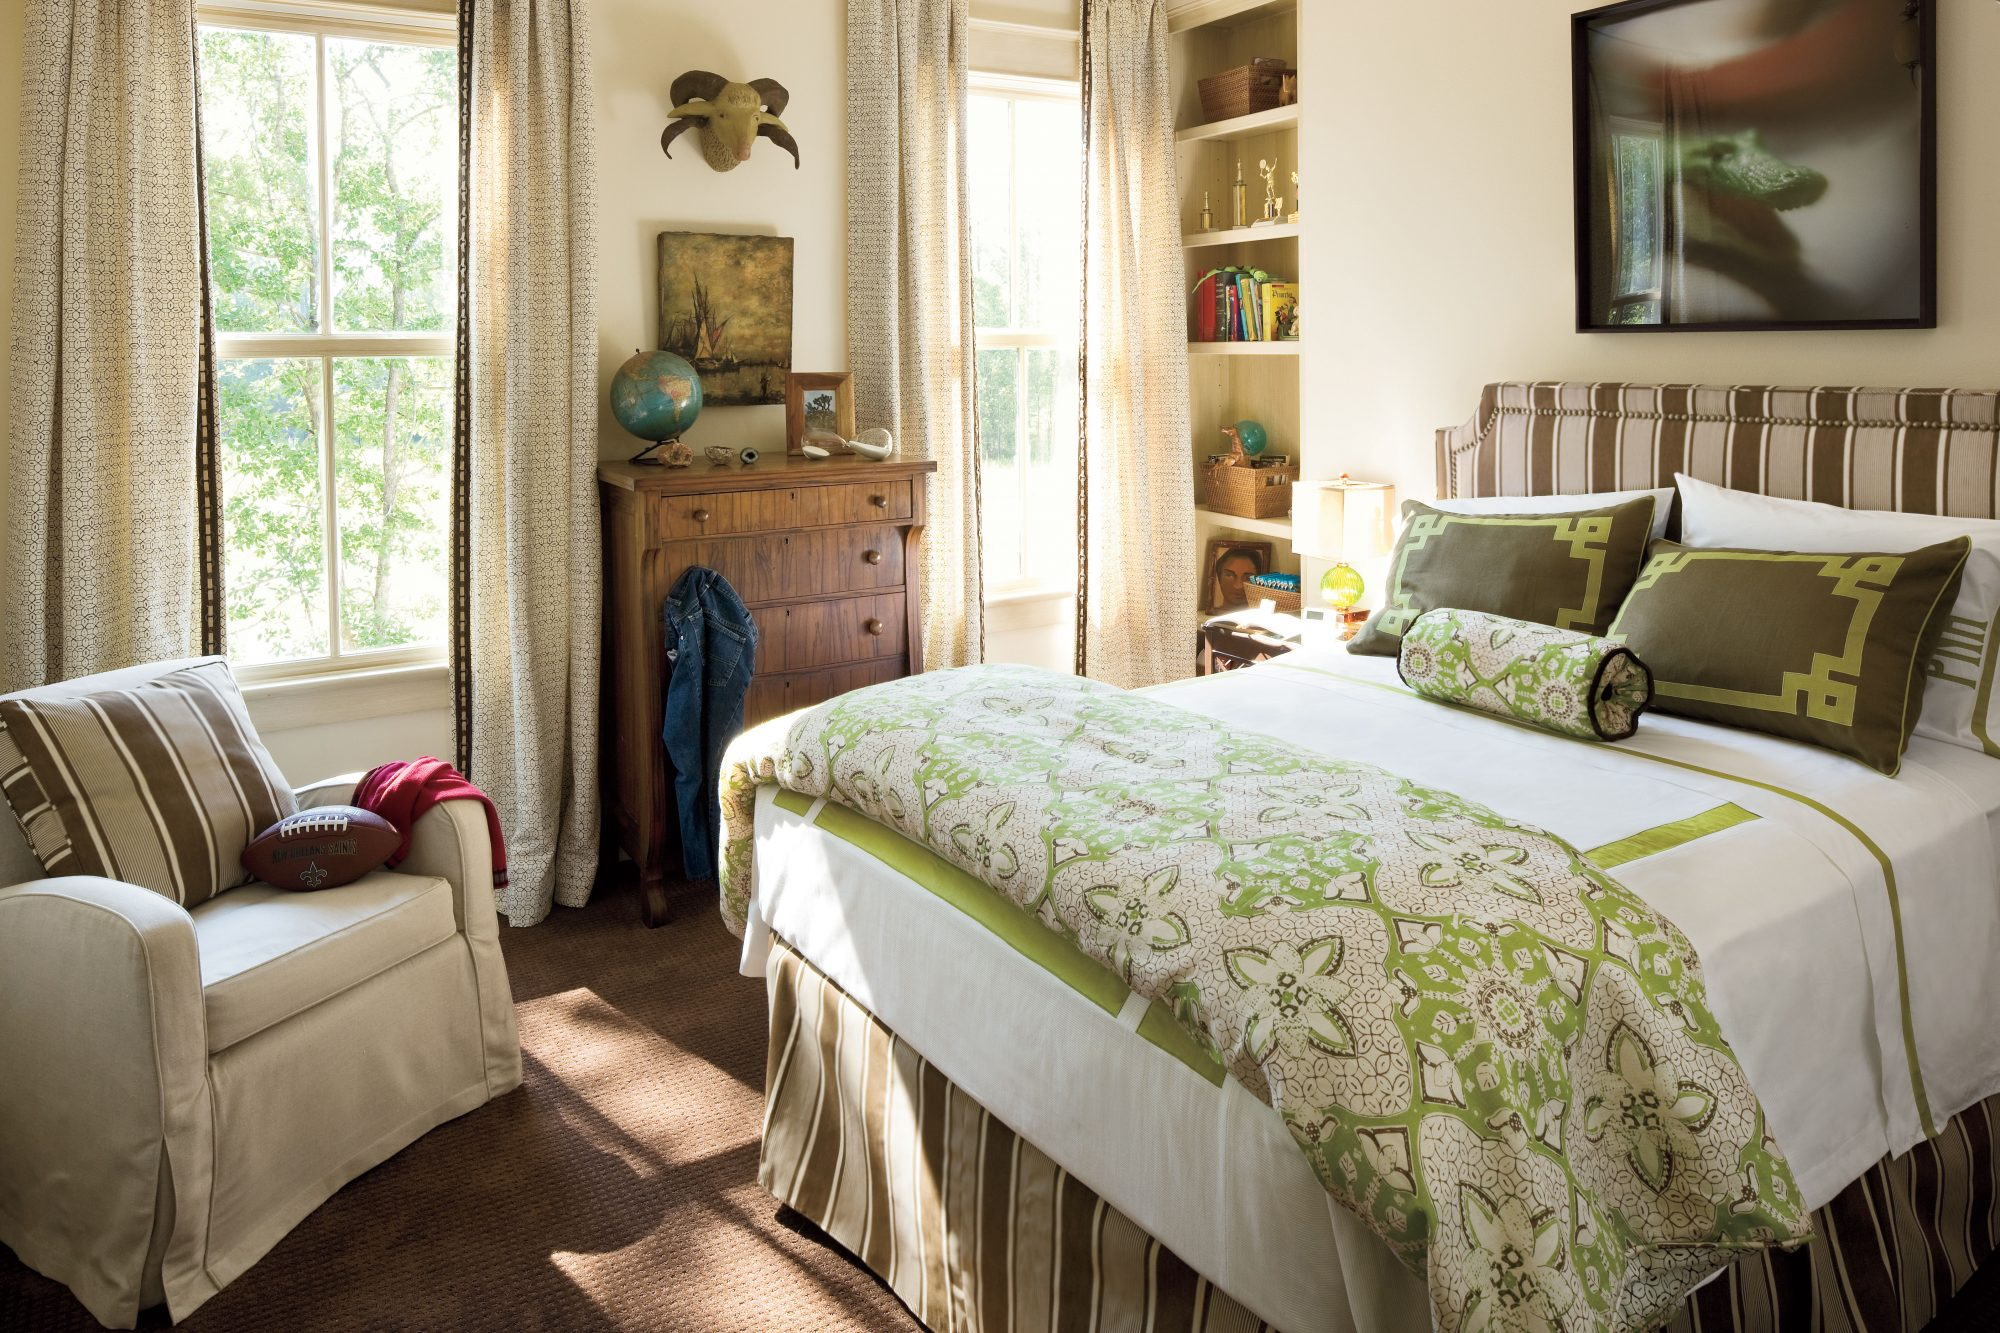 Marsh Inspired Bedroom. Colorful Beach Bedroom Decorating Ideas   Southern Living